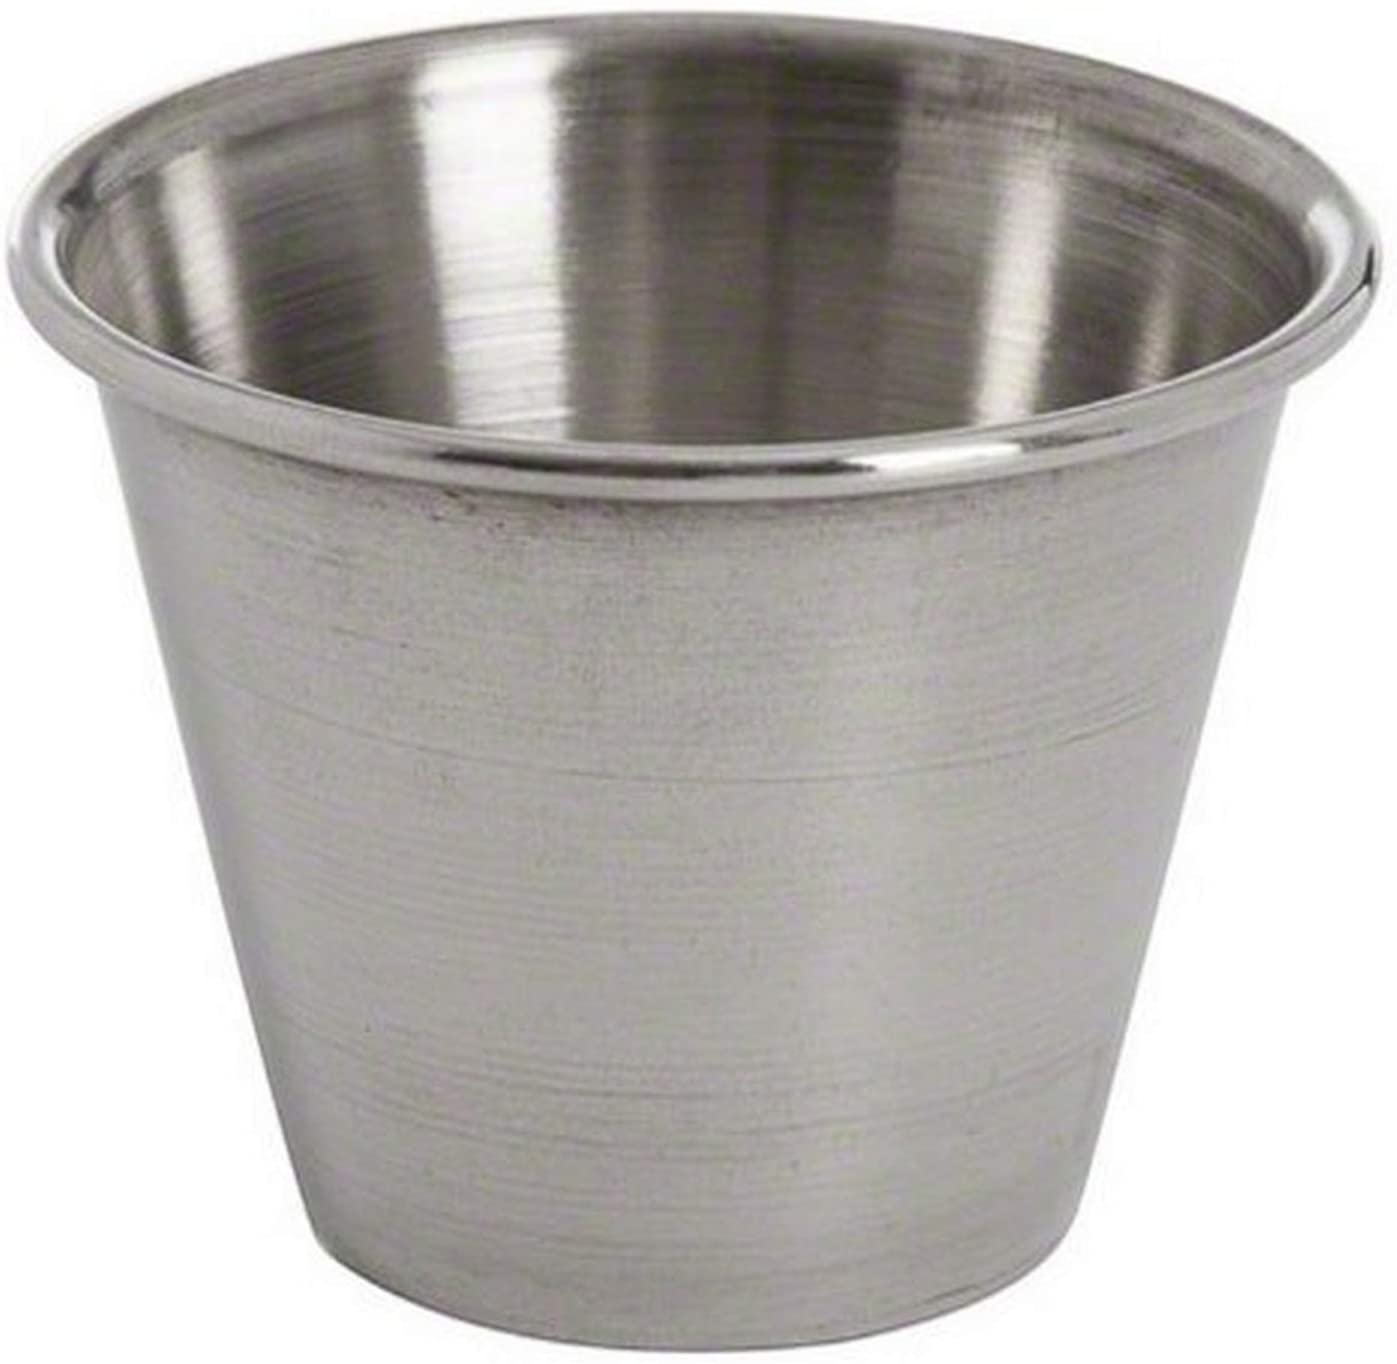 American Metalcraft MB1 2-1/2 oz Stainless Steel Sauce Cup